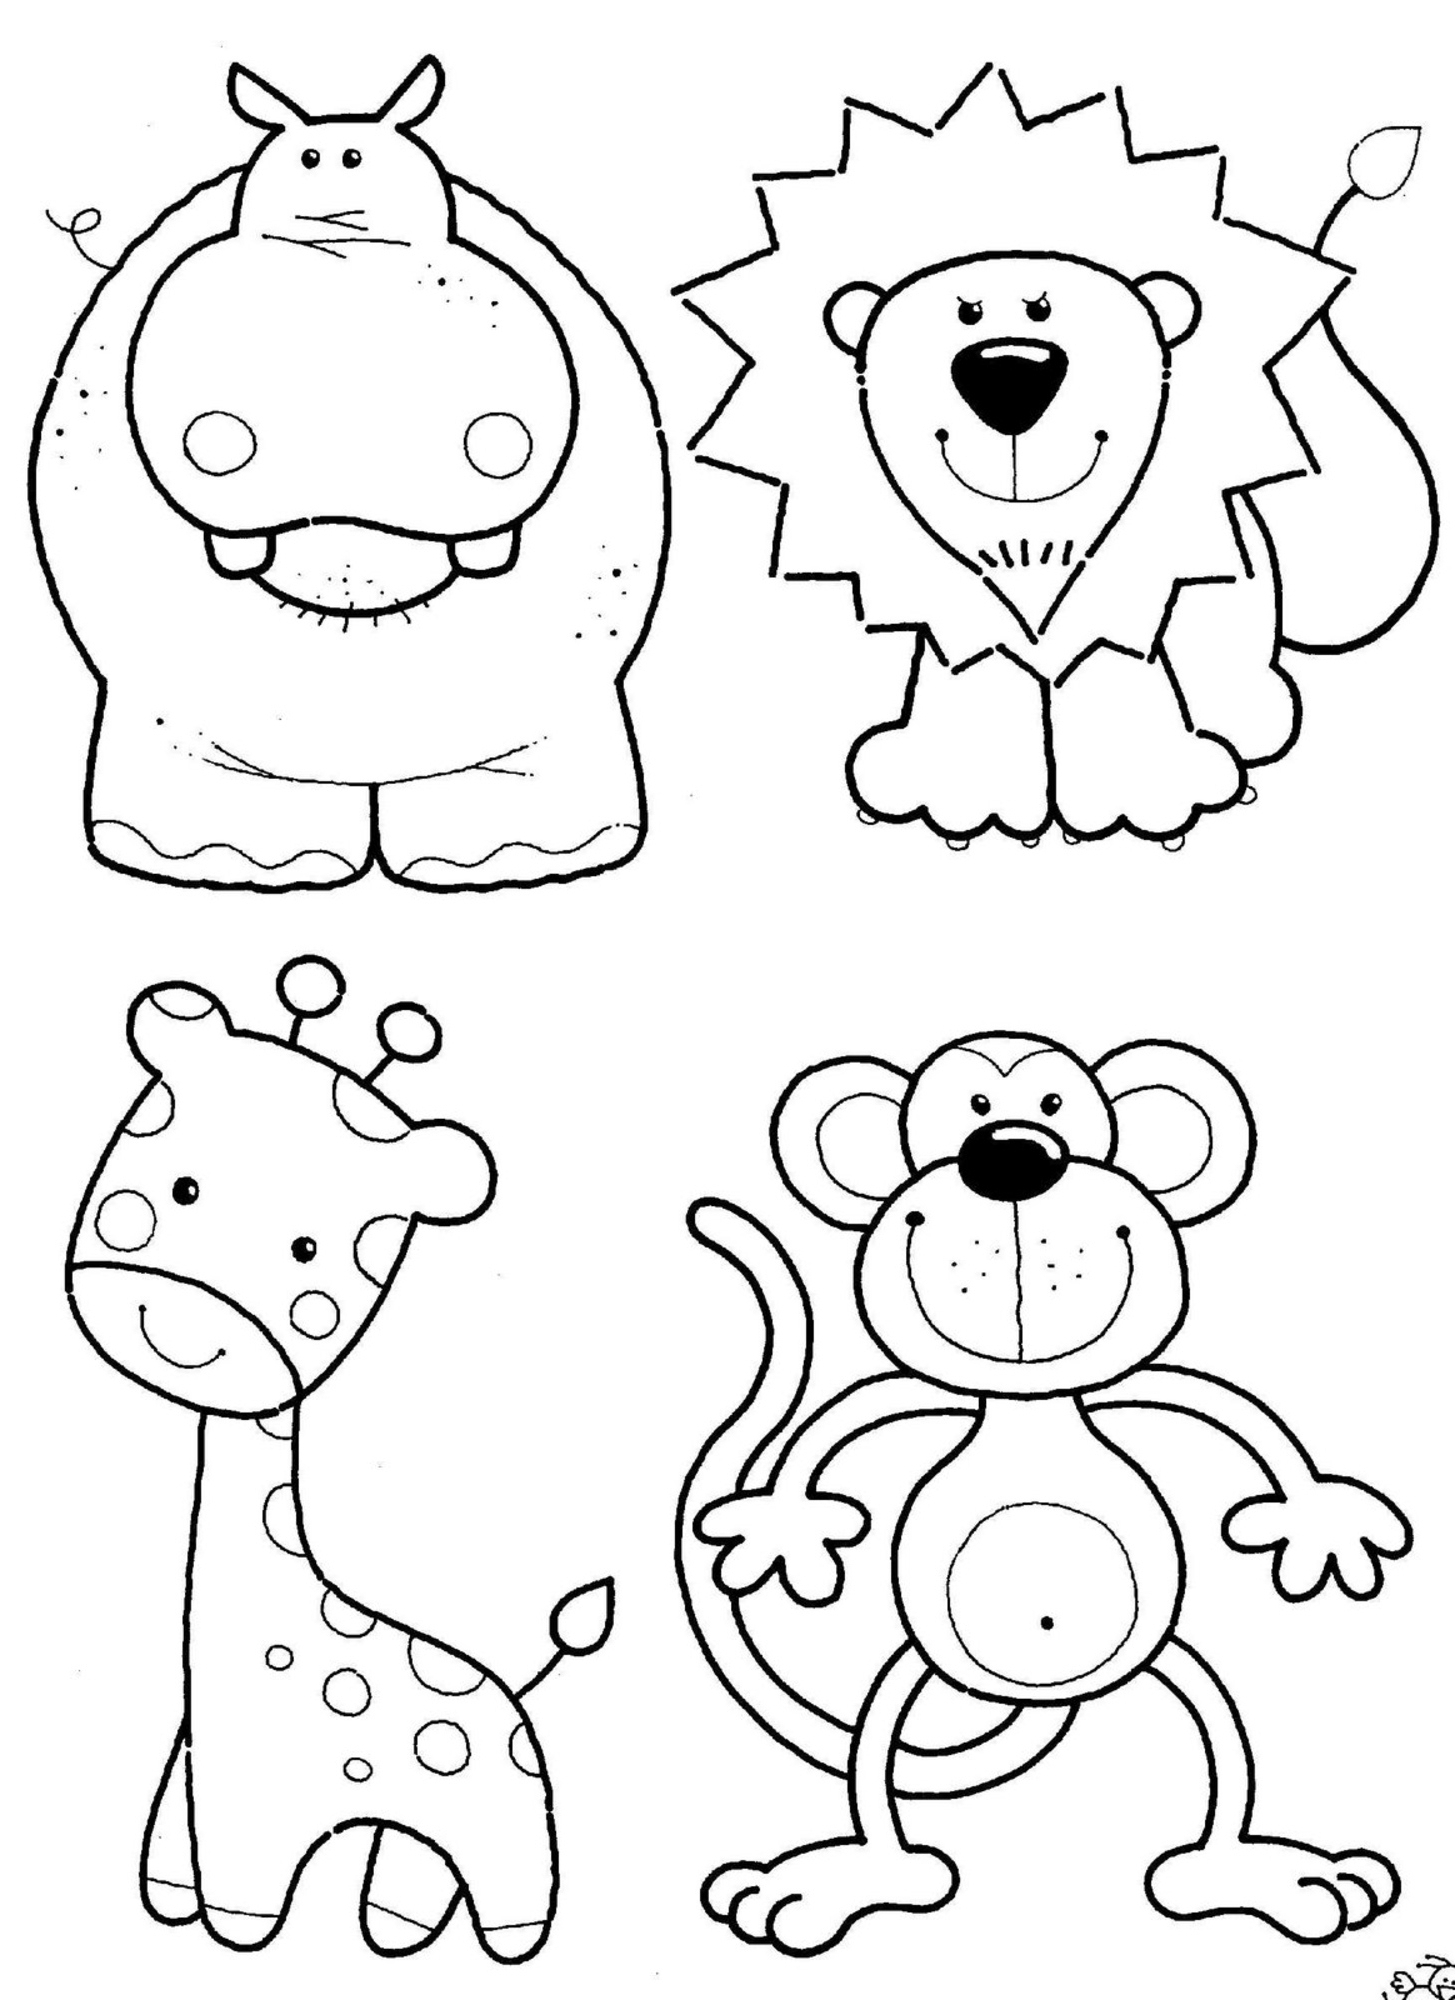 1455x2000 Zoo Cartoon Drawing At Getdrawings Com Free For Personal Use Z